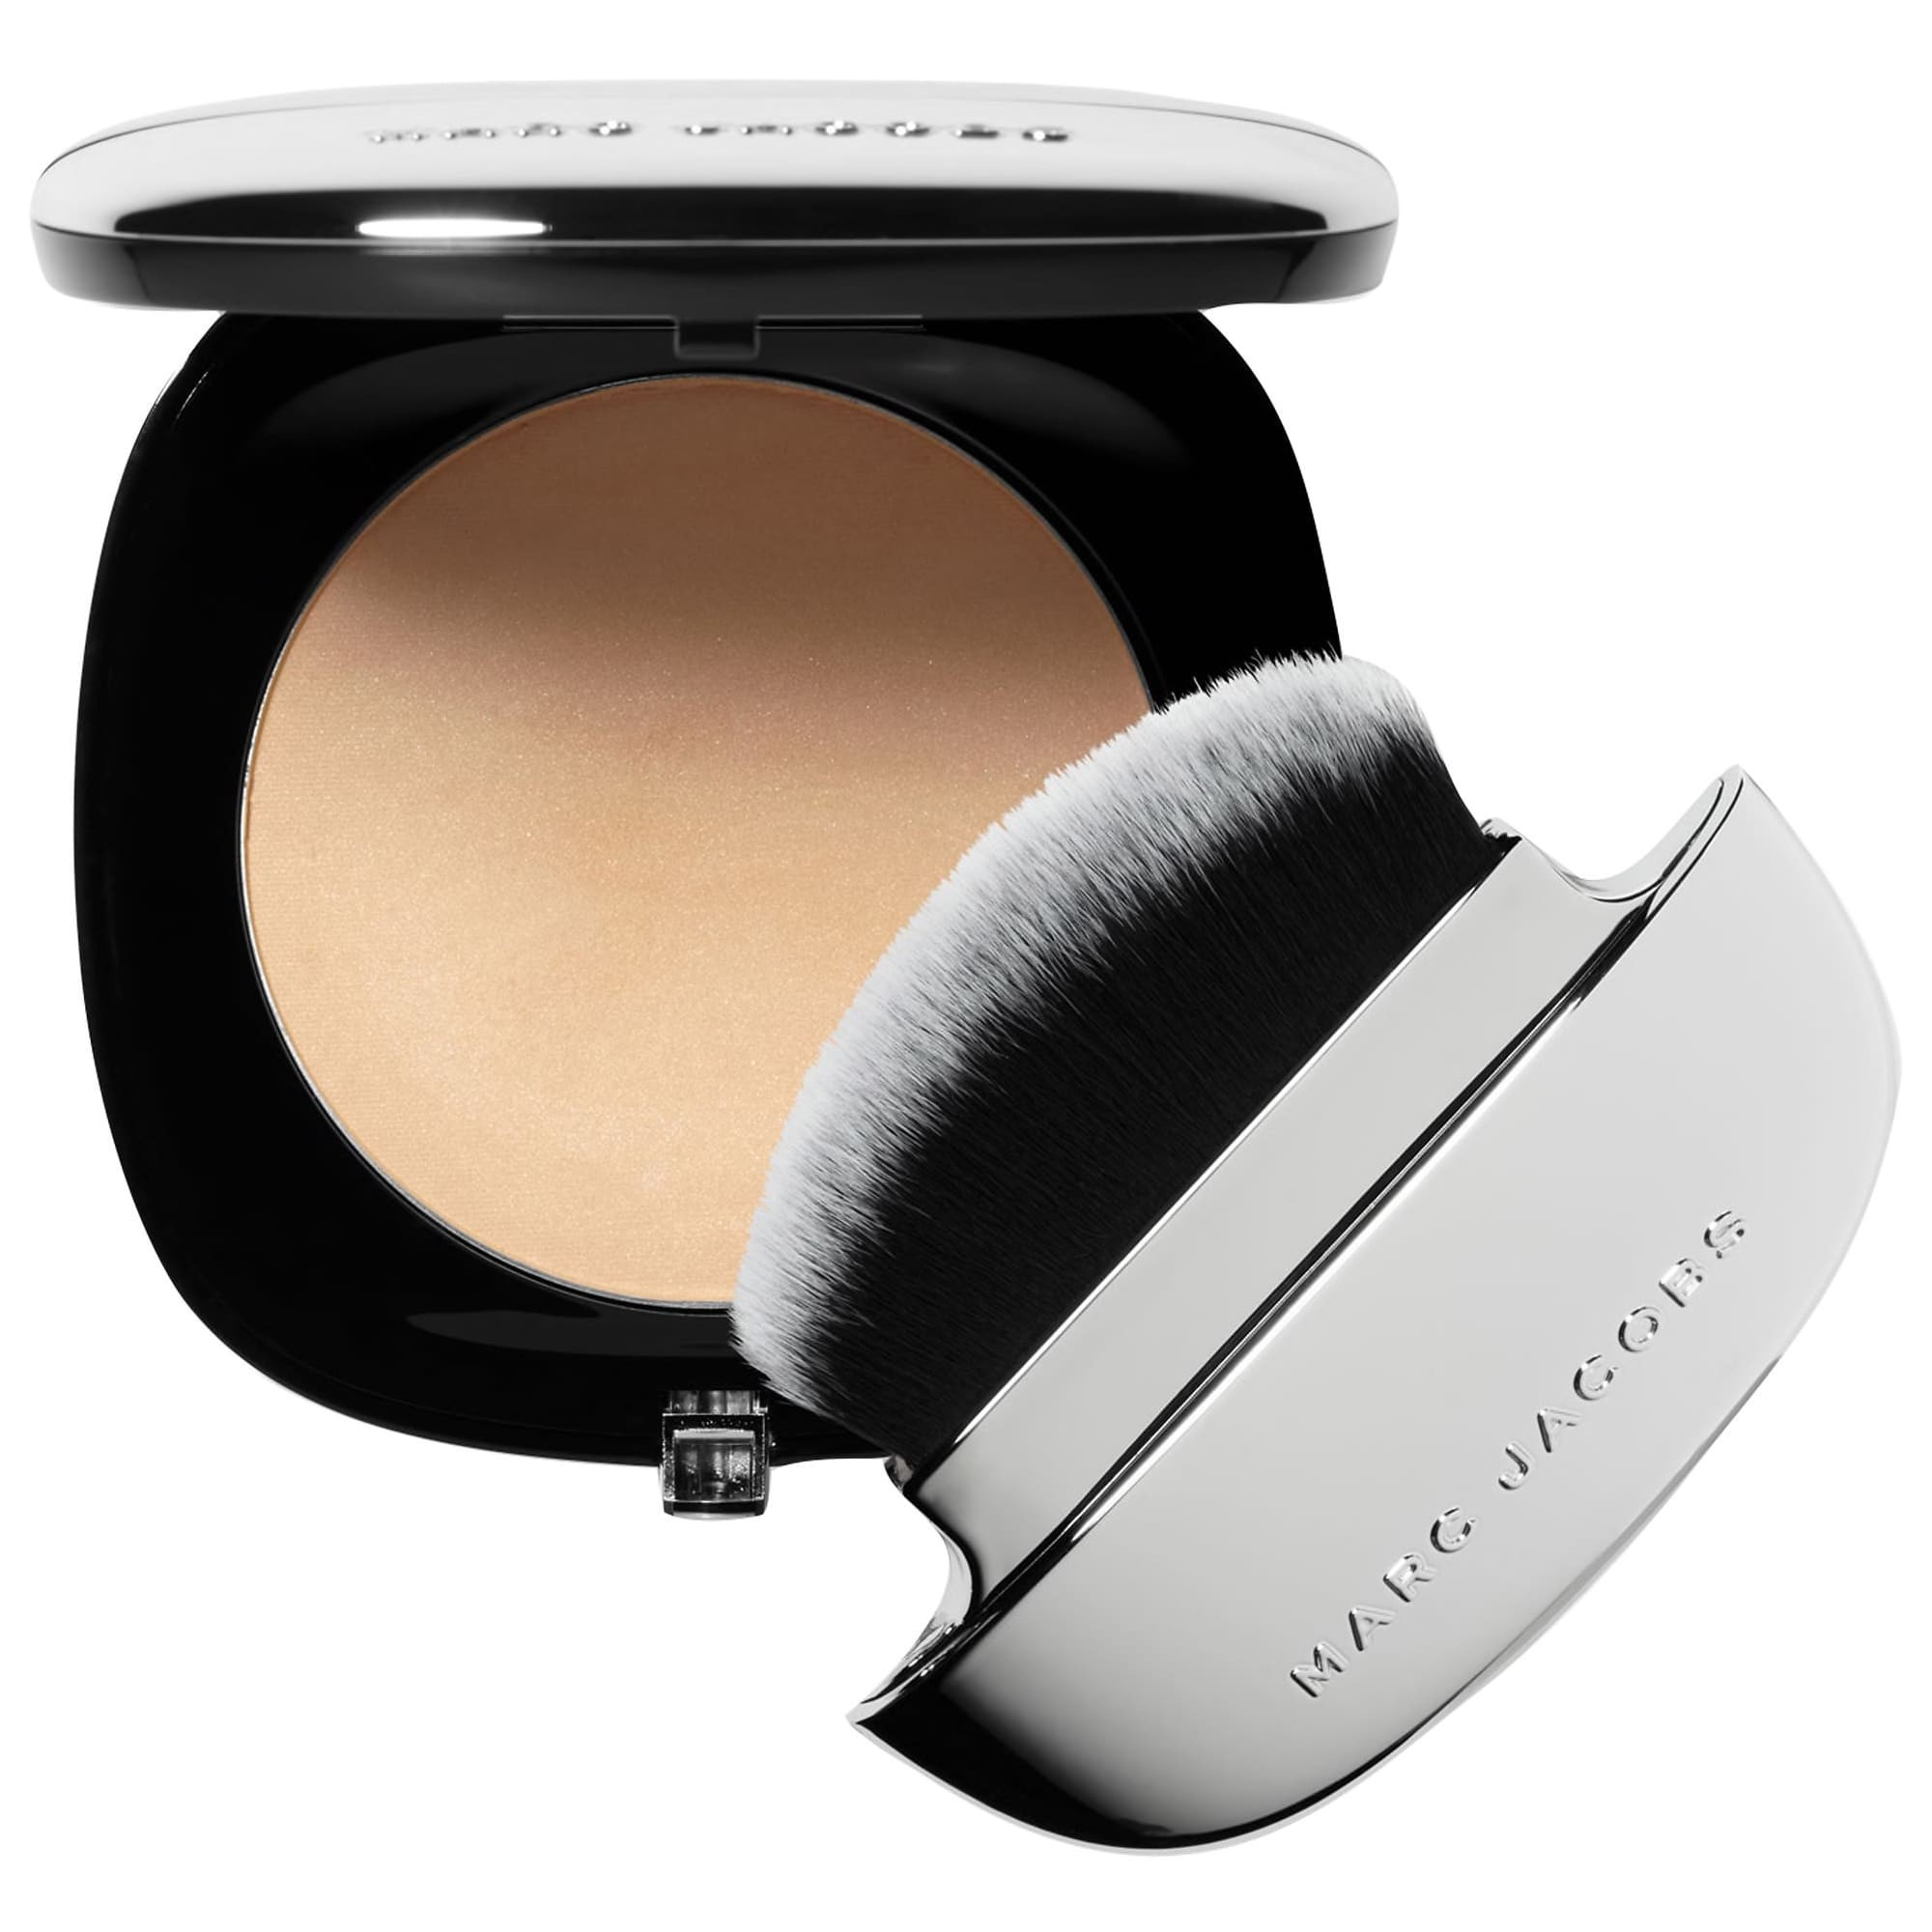 Marc Jacobs Beauty Accomplice Instant Blurring Beauty Powder 50 Ingenue